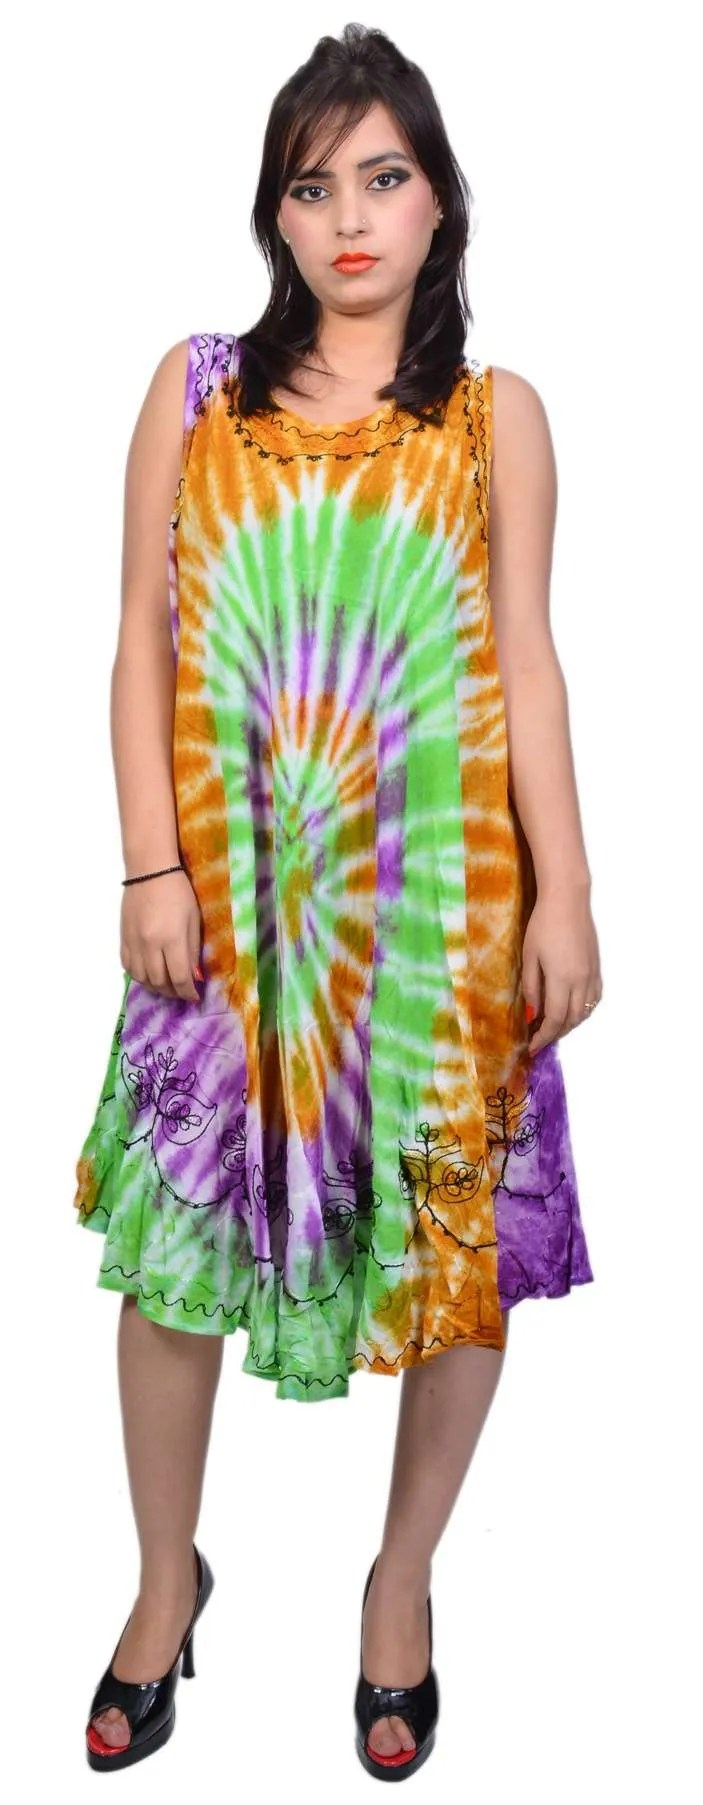 Wholesale Suppliers Australia Clothing Wholesale Indonesian Clothing At Reasonable Price